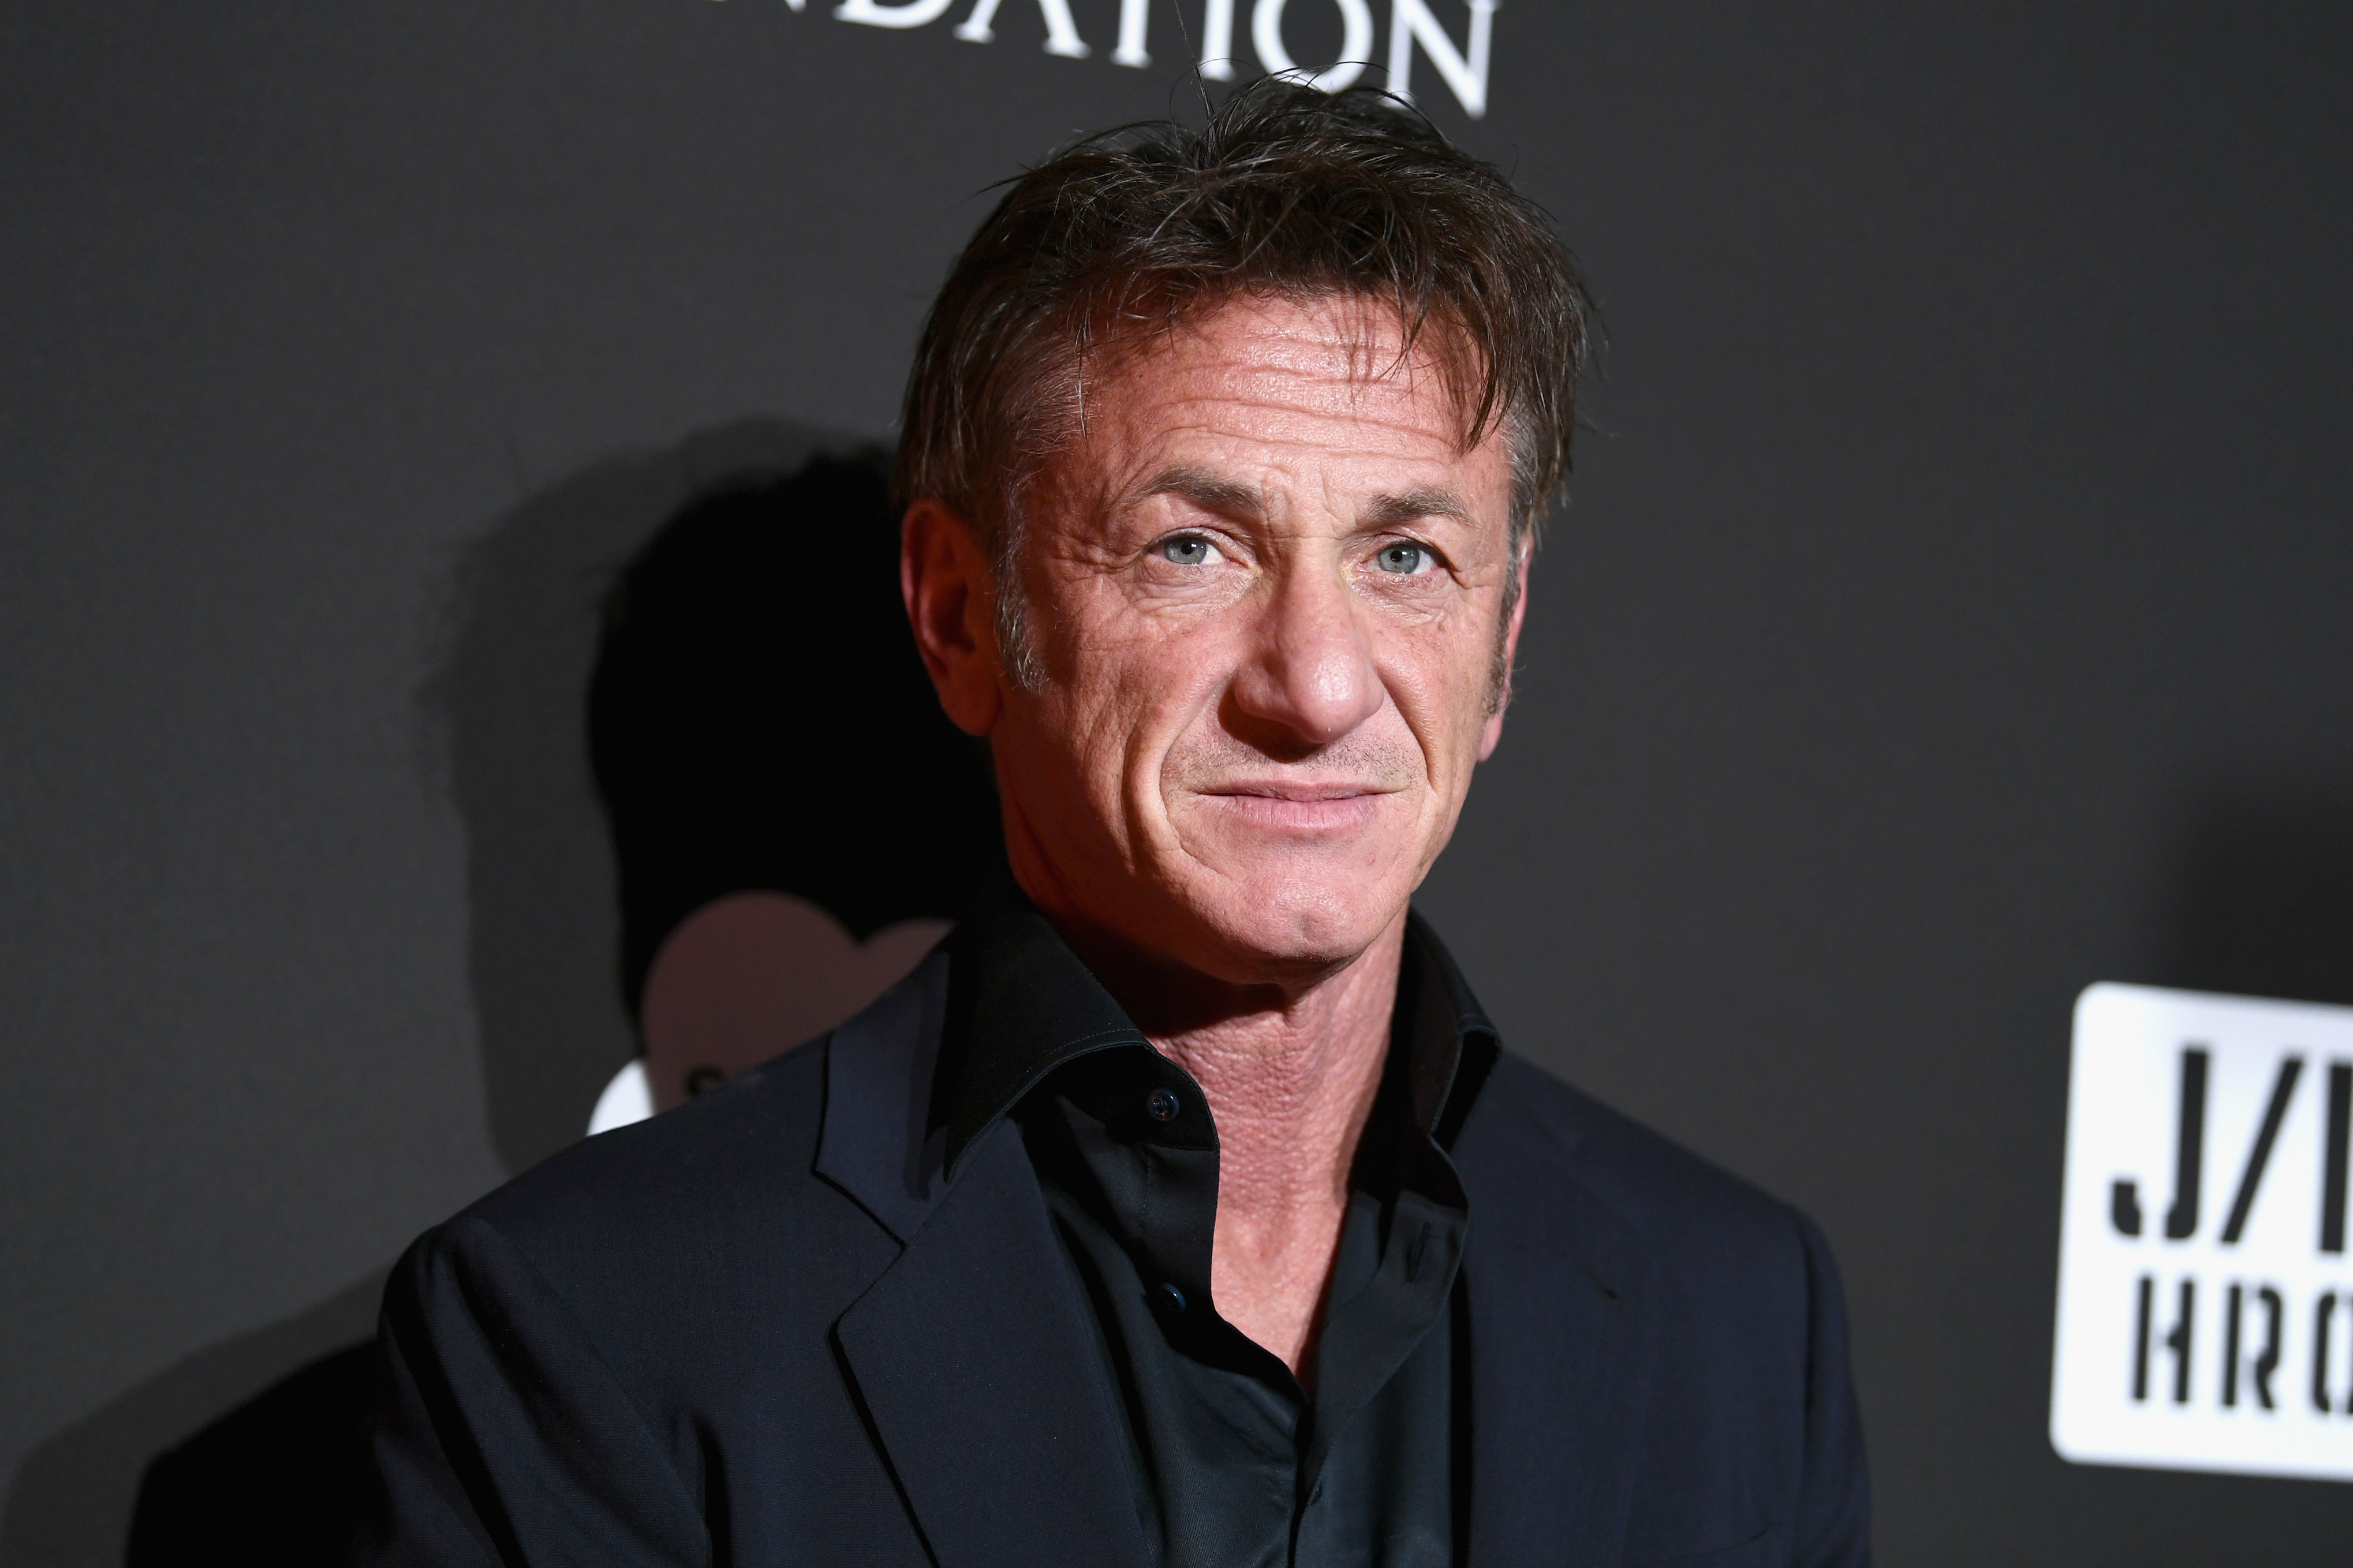 Sean Penn blasts #MeToo and admits he doesn't trust 'dishonest' movement